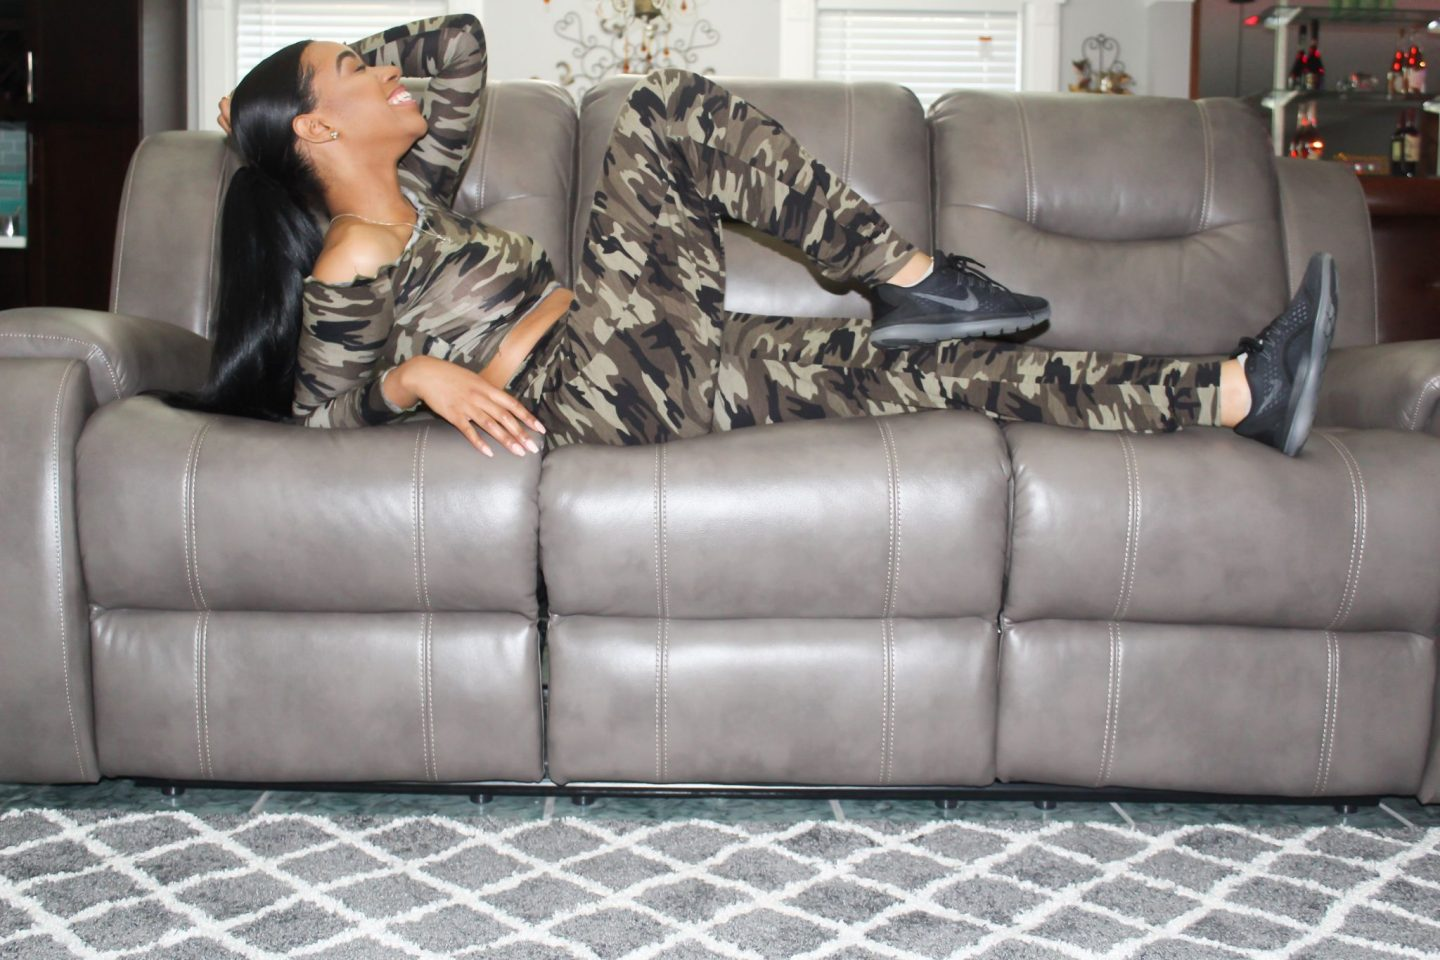 Keeping it Comfy in Camo